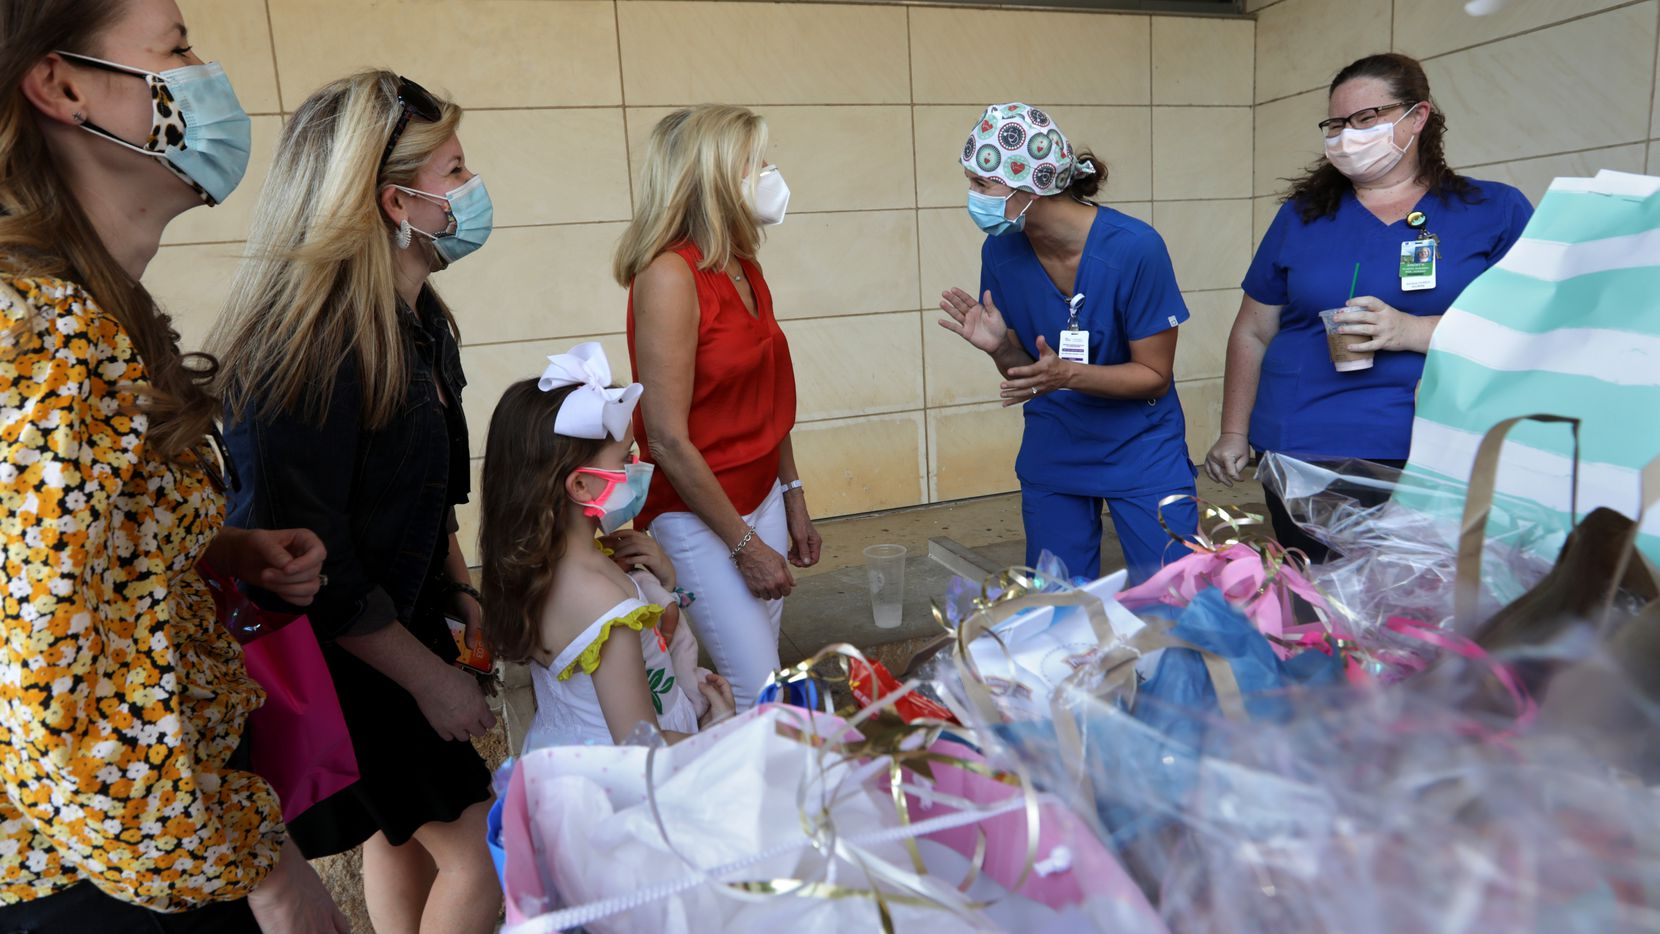 Volunteers deliver bags of goodies to health care workers at Parkland Hospital in Dallas on Aug. 24, 2020.